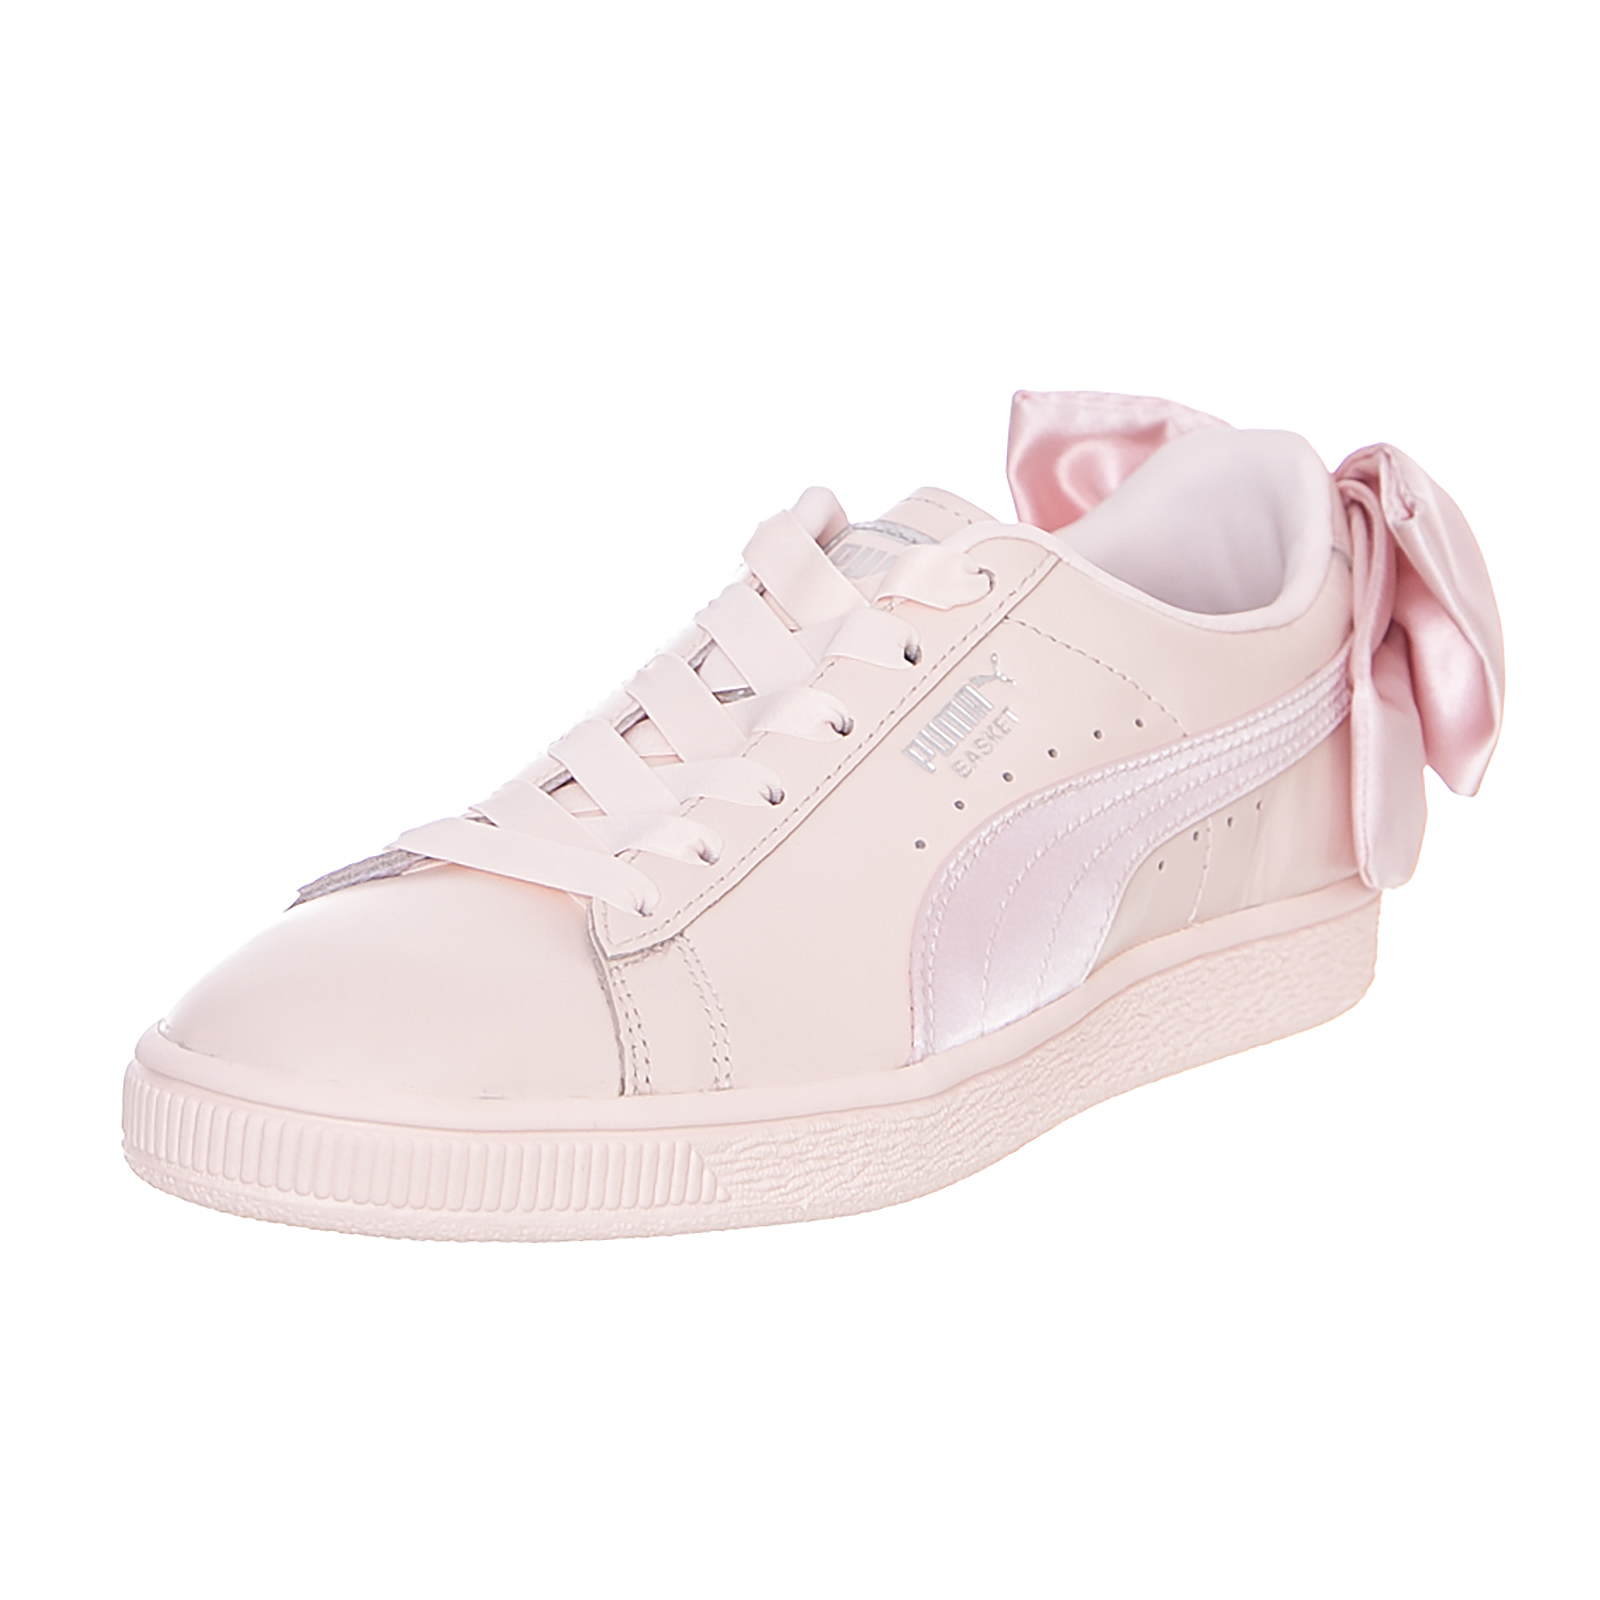 pretty nice 2d08a 370e6 Details about Puma Basketball Sneakers Bow Wn S Pearl-Pearl Pink